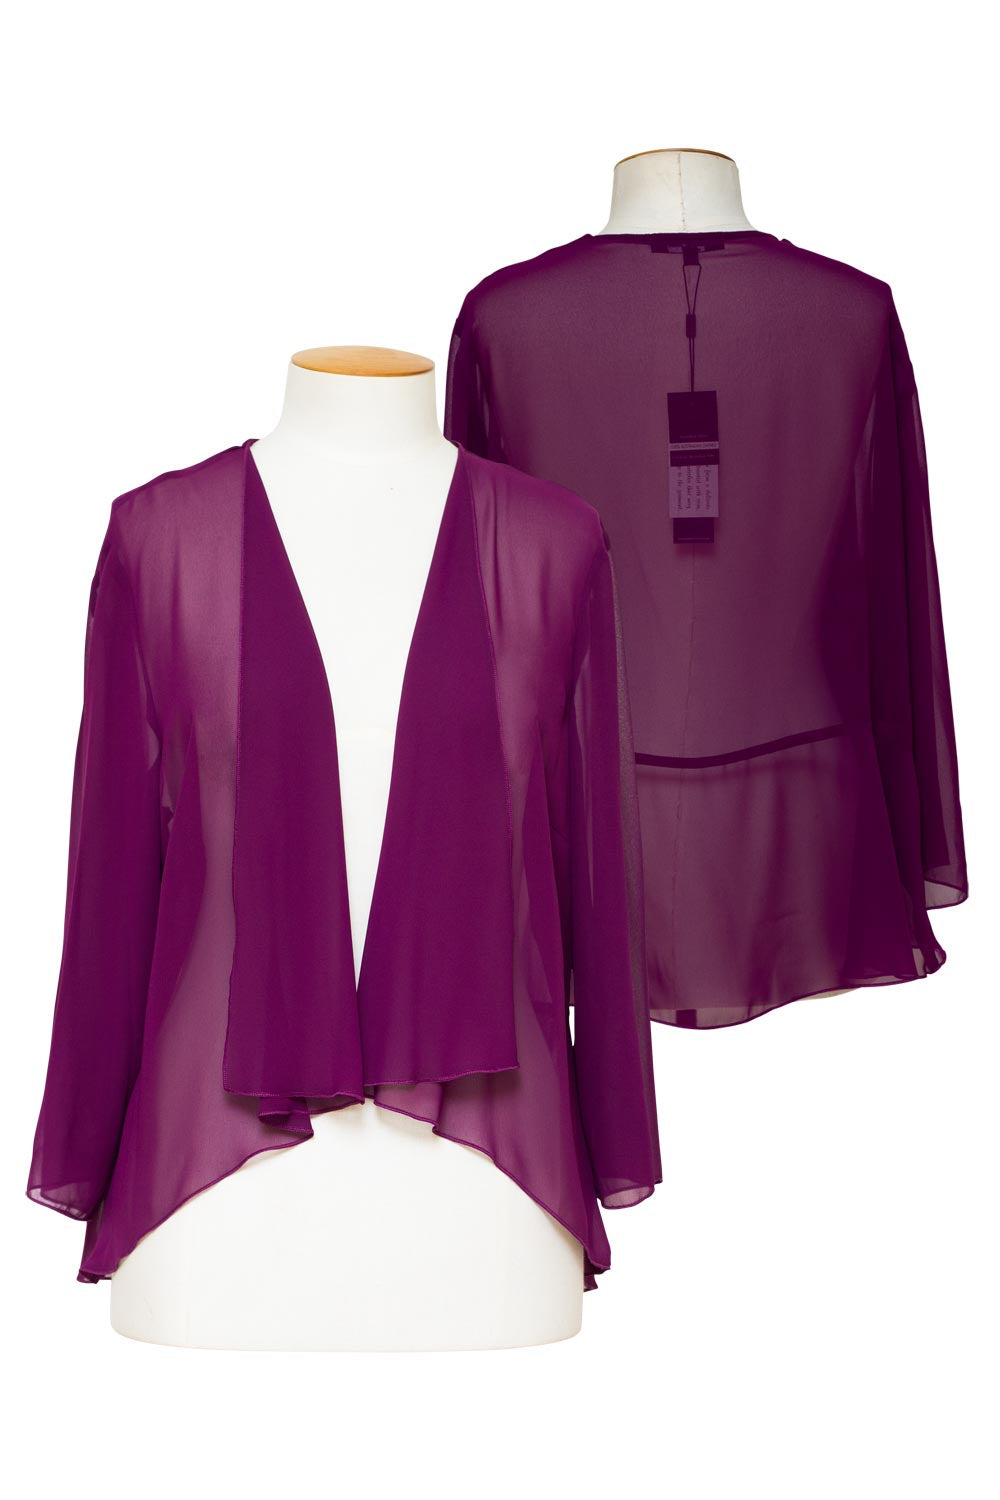 layla-jones-jesse-harper-calvin-klein-chiffon-jacket-with-peplum